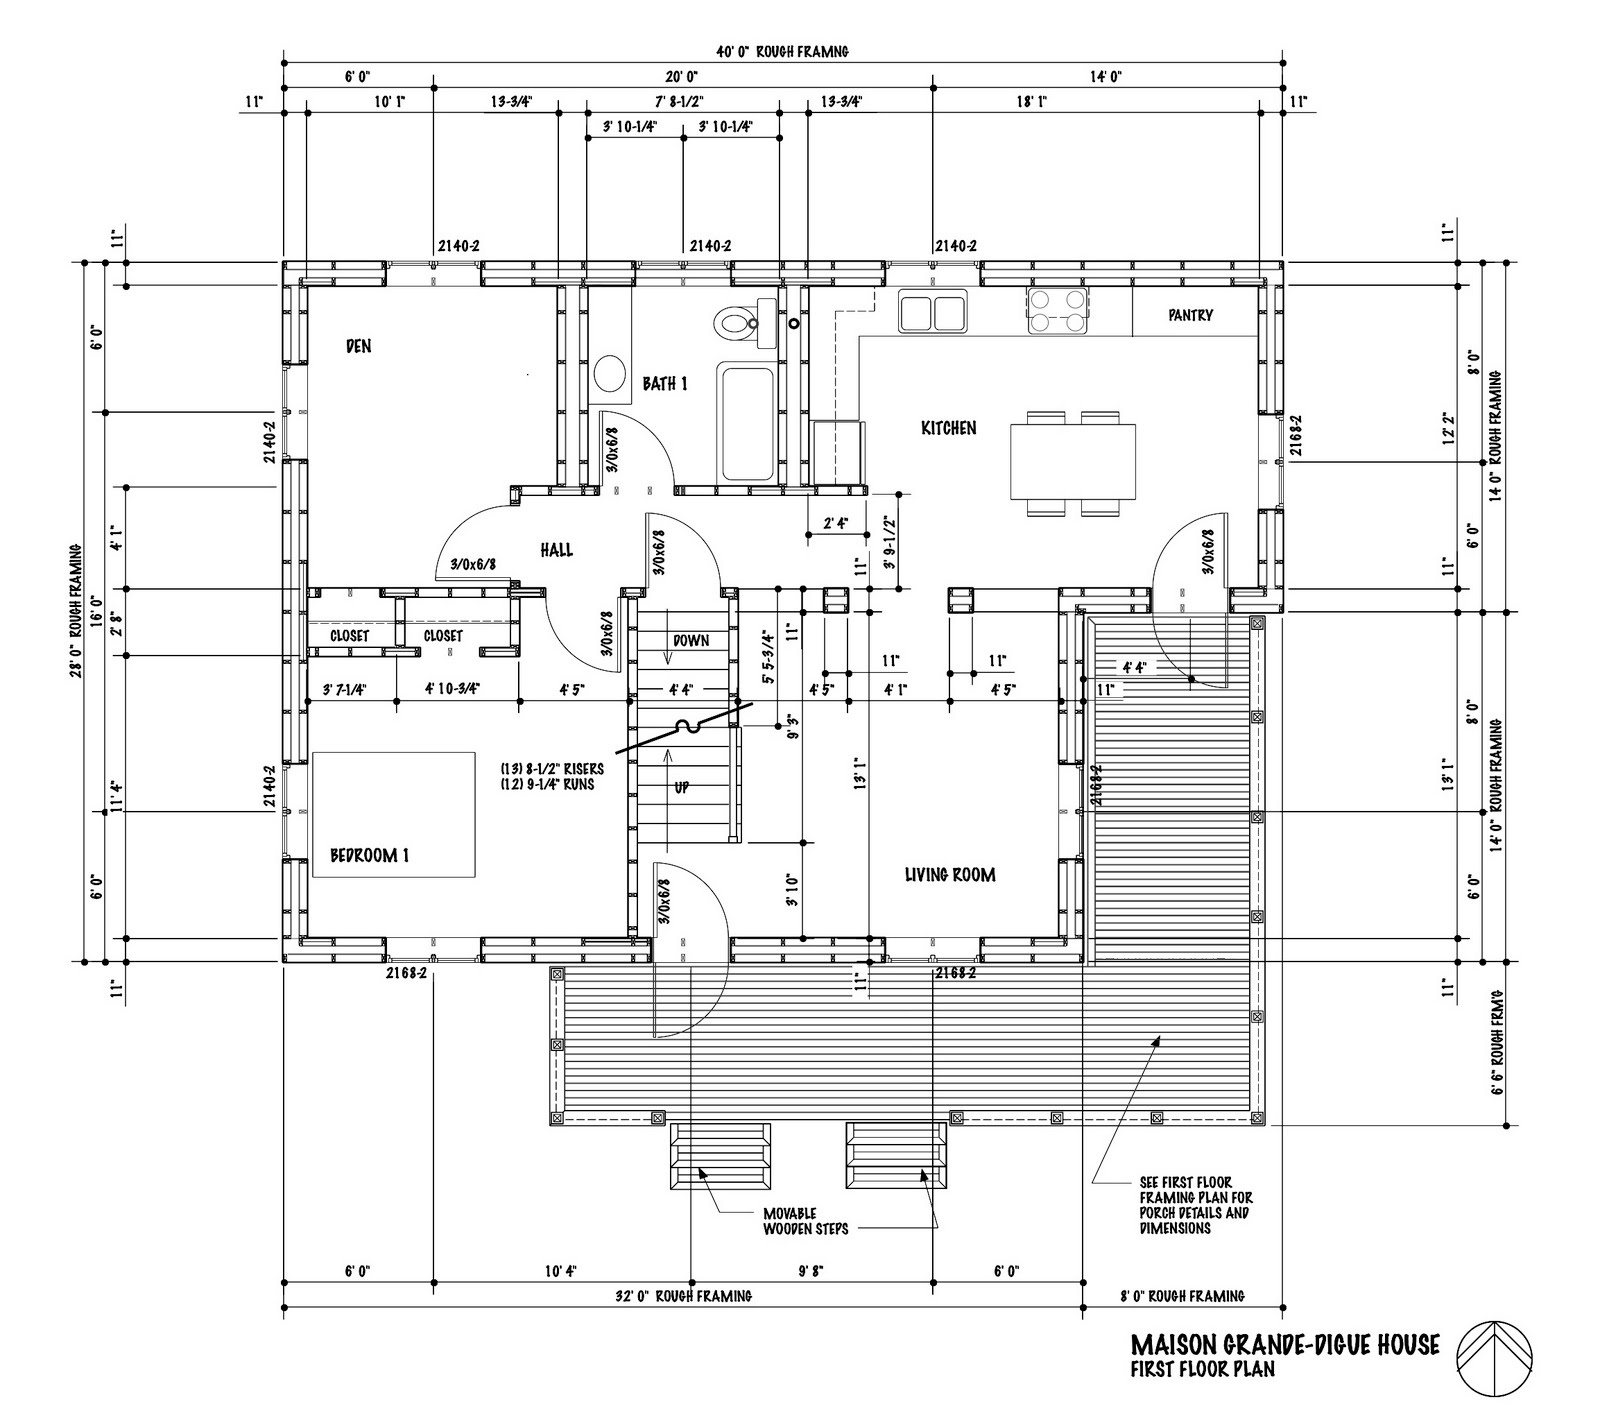 Home Floor Plans with Dimensions